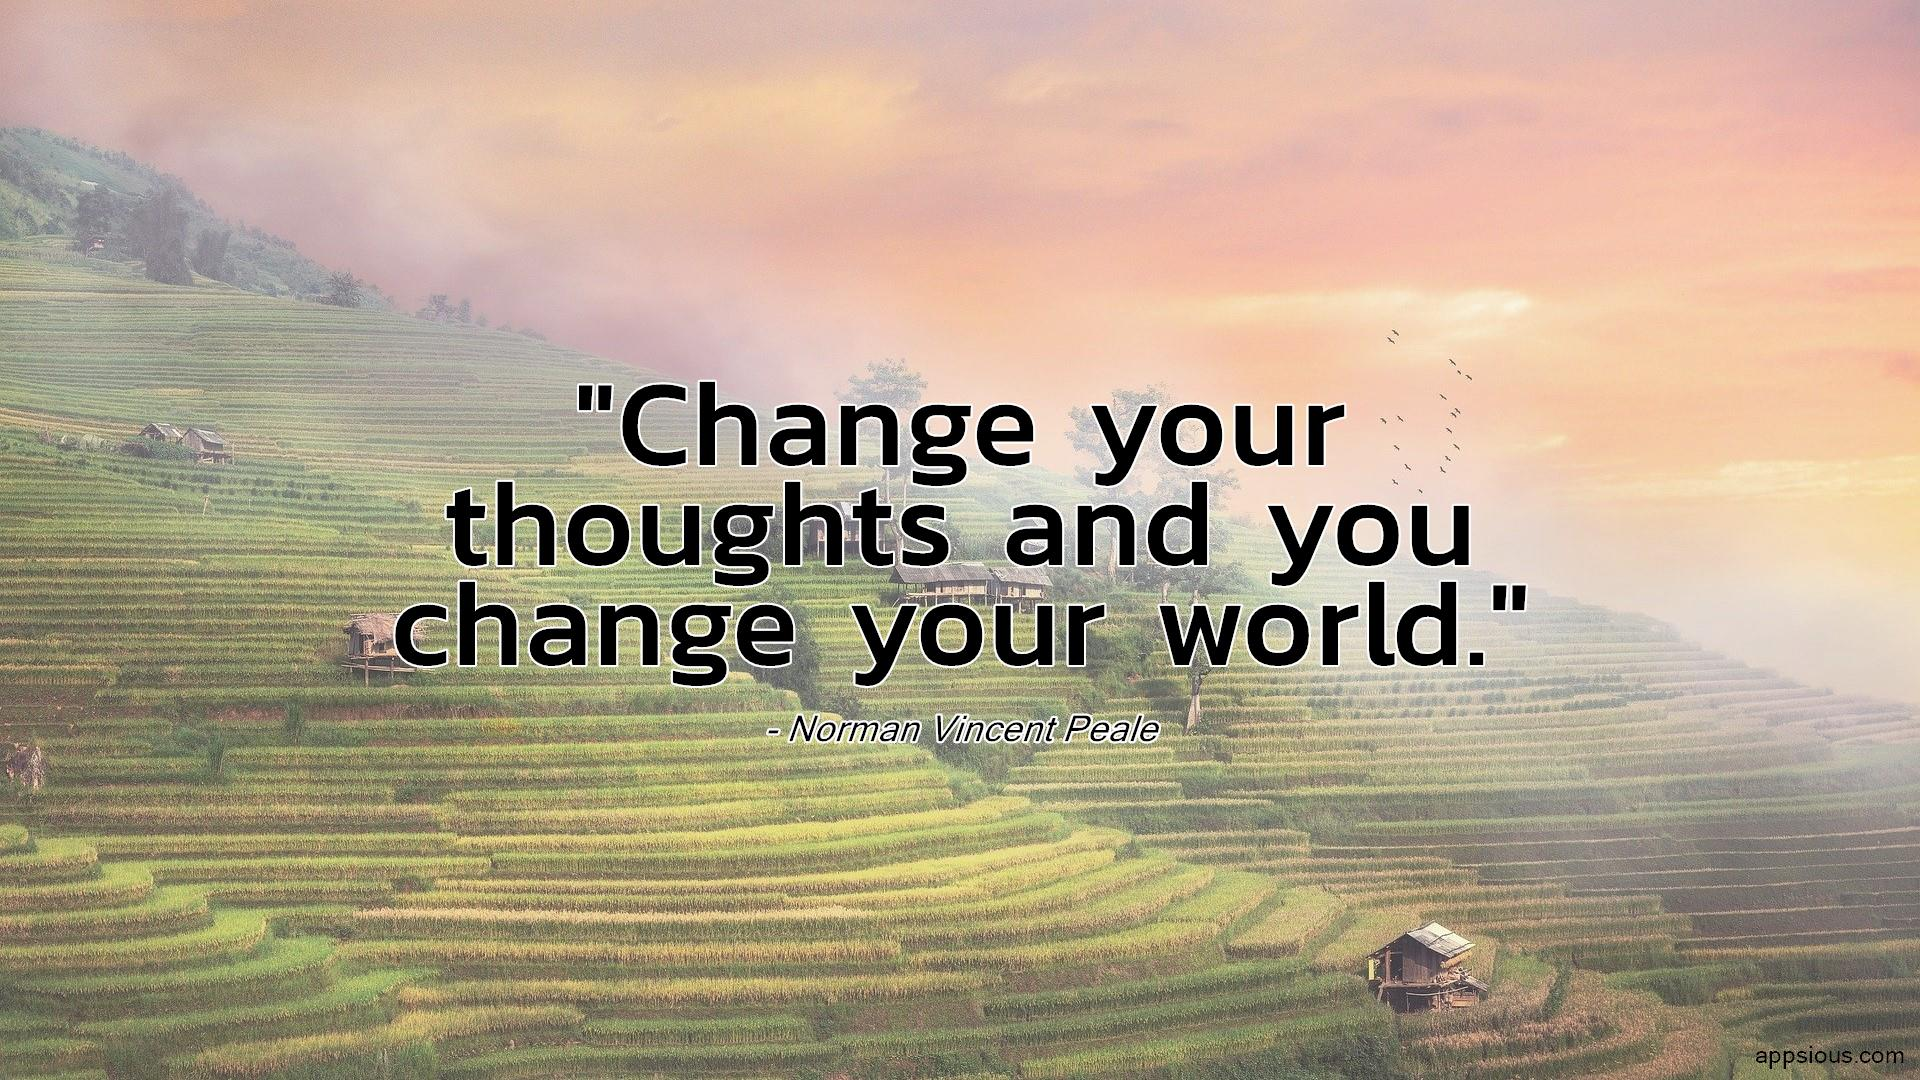 Change your thoughts and you change your world.